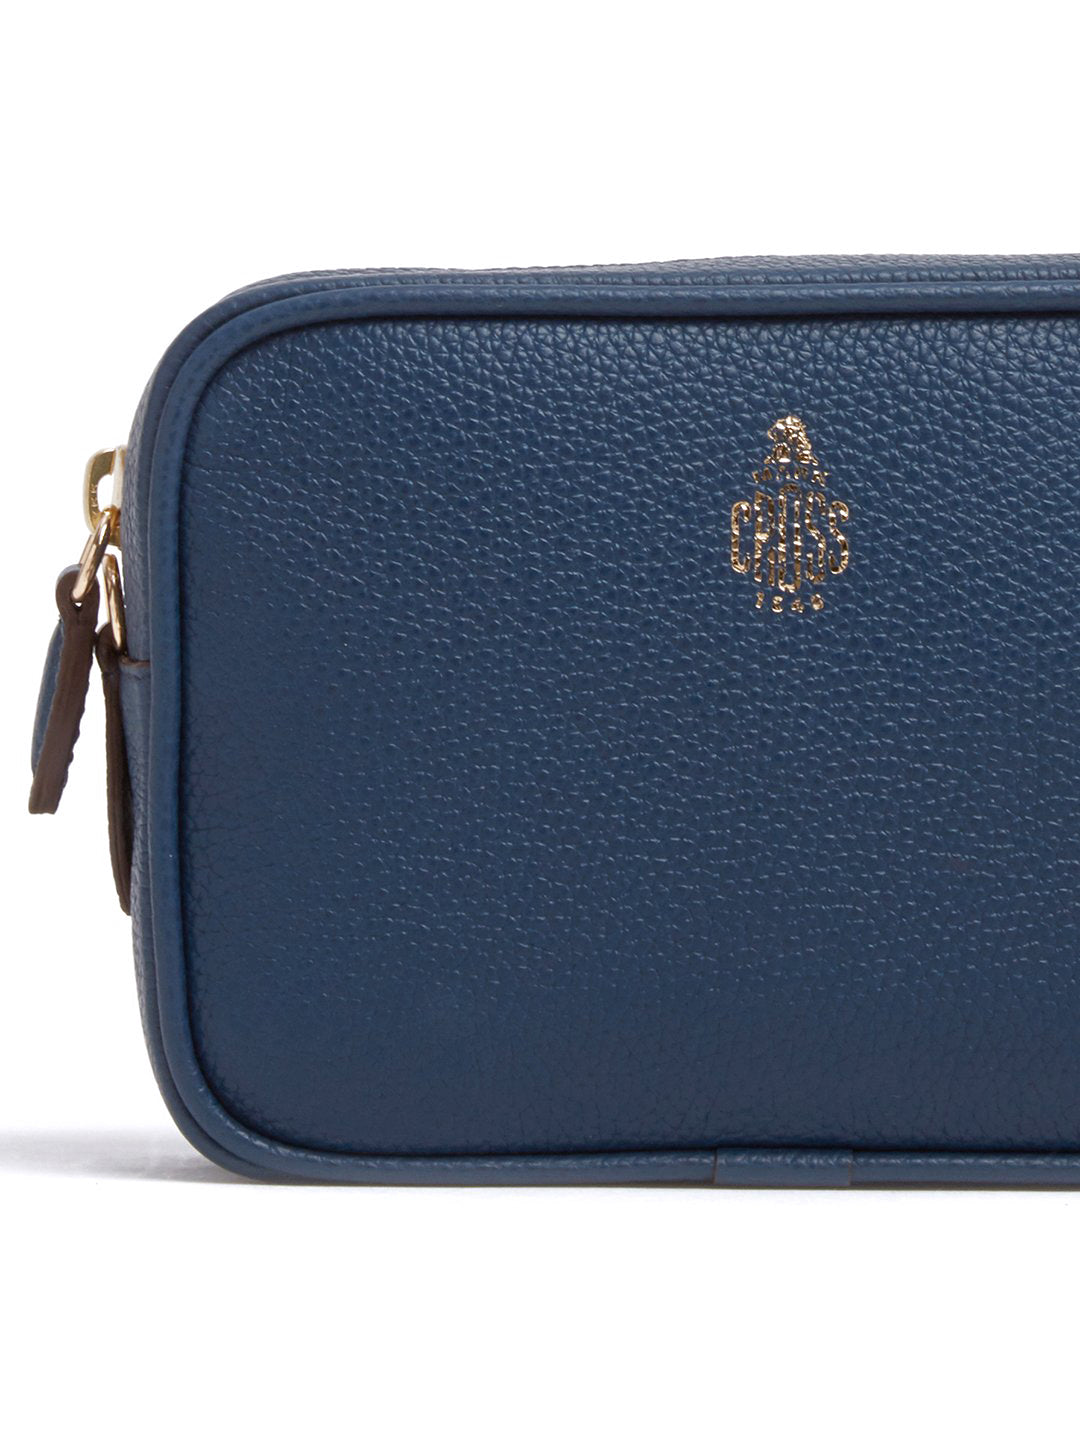 Mark Cross Leather Zip Pouch Soft Calf Navy Detail